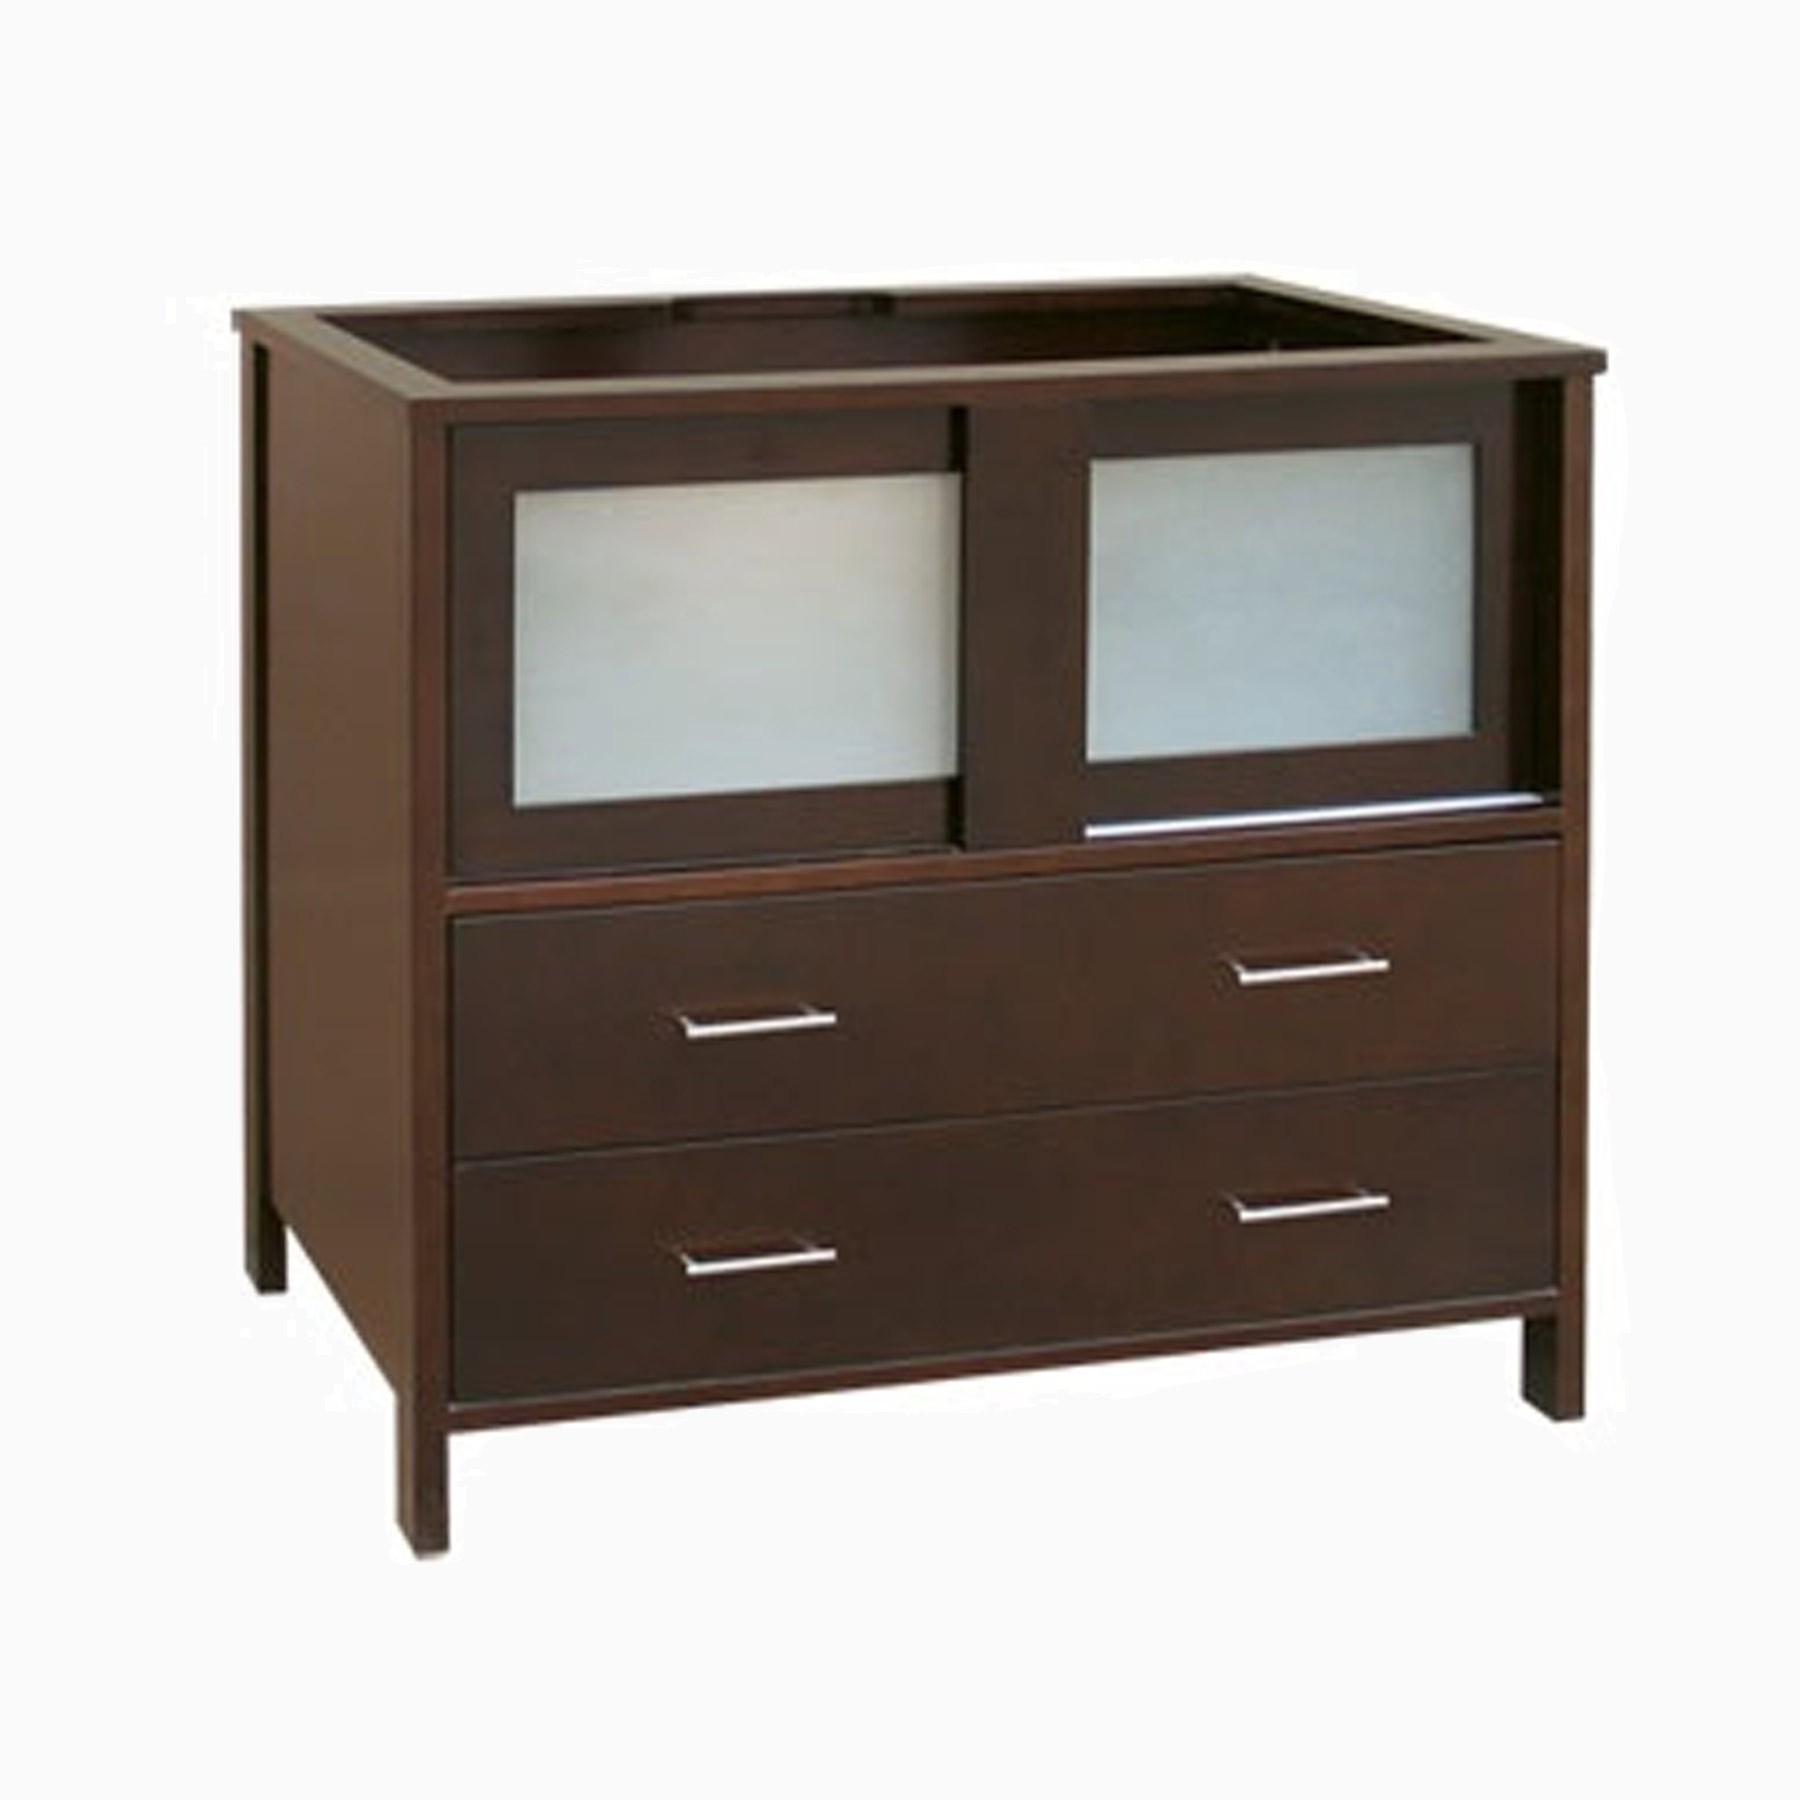 31 Paula Single Bathroom Vanity Base Cabinet Only With Frosted Glass Doors Vintage Cherry